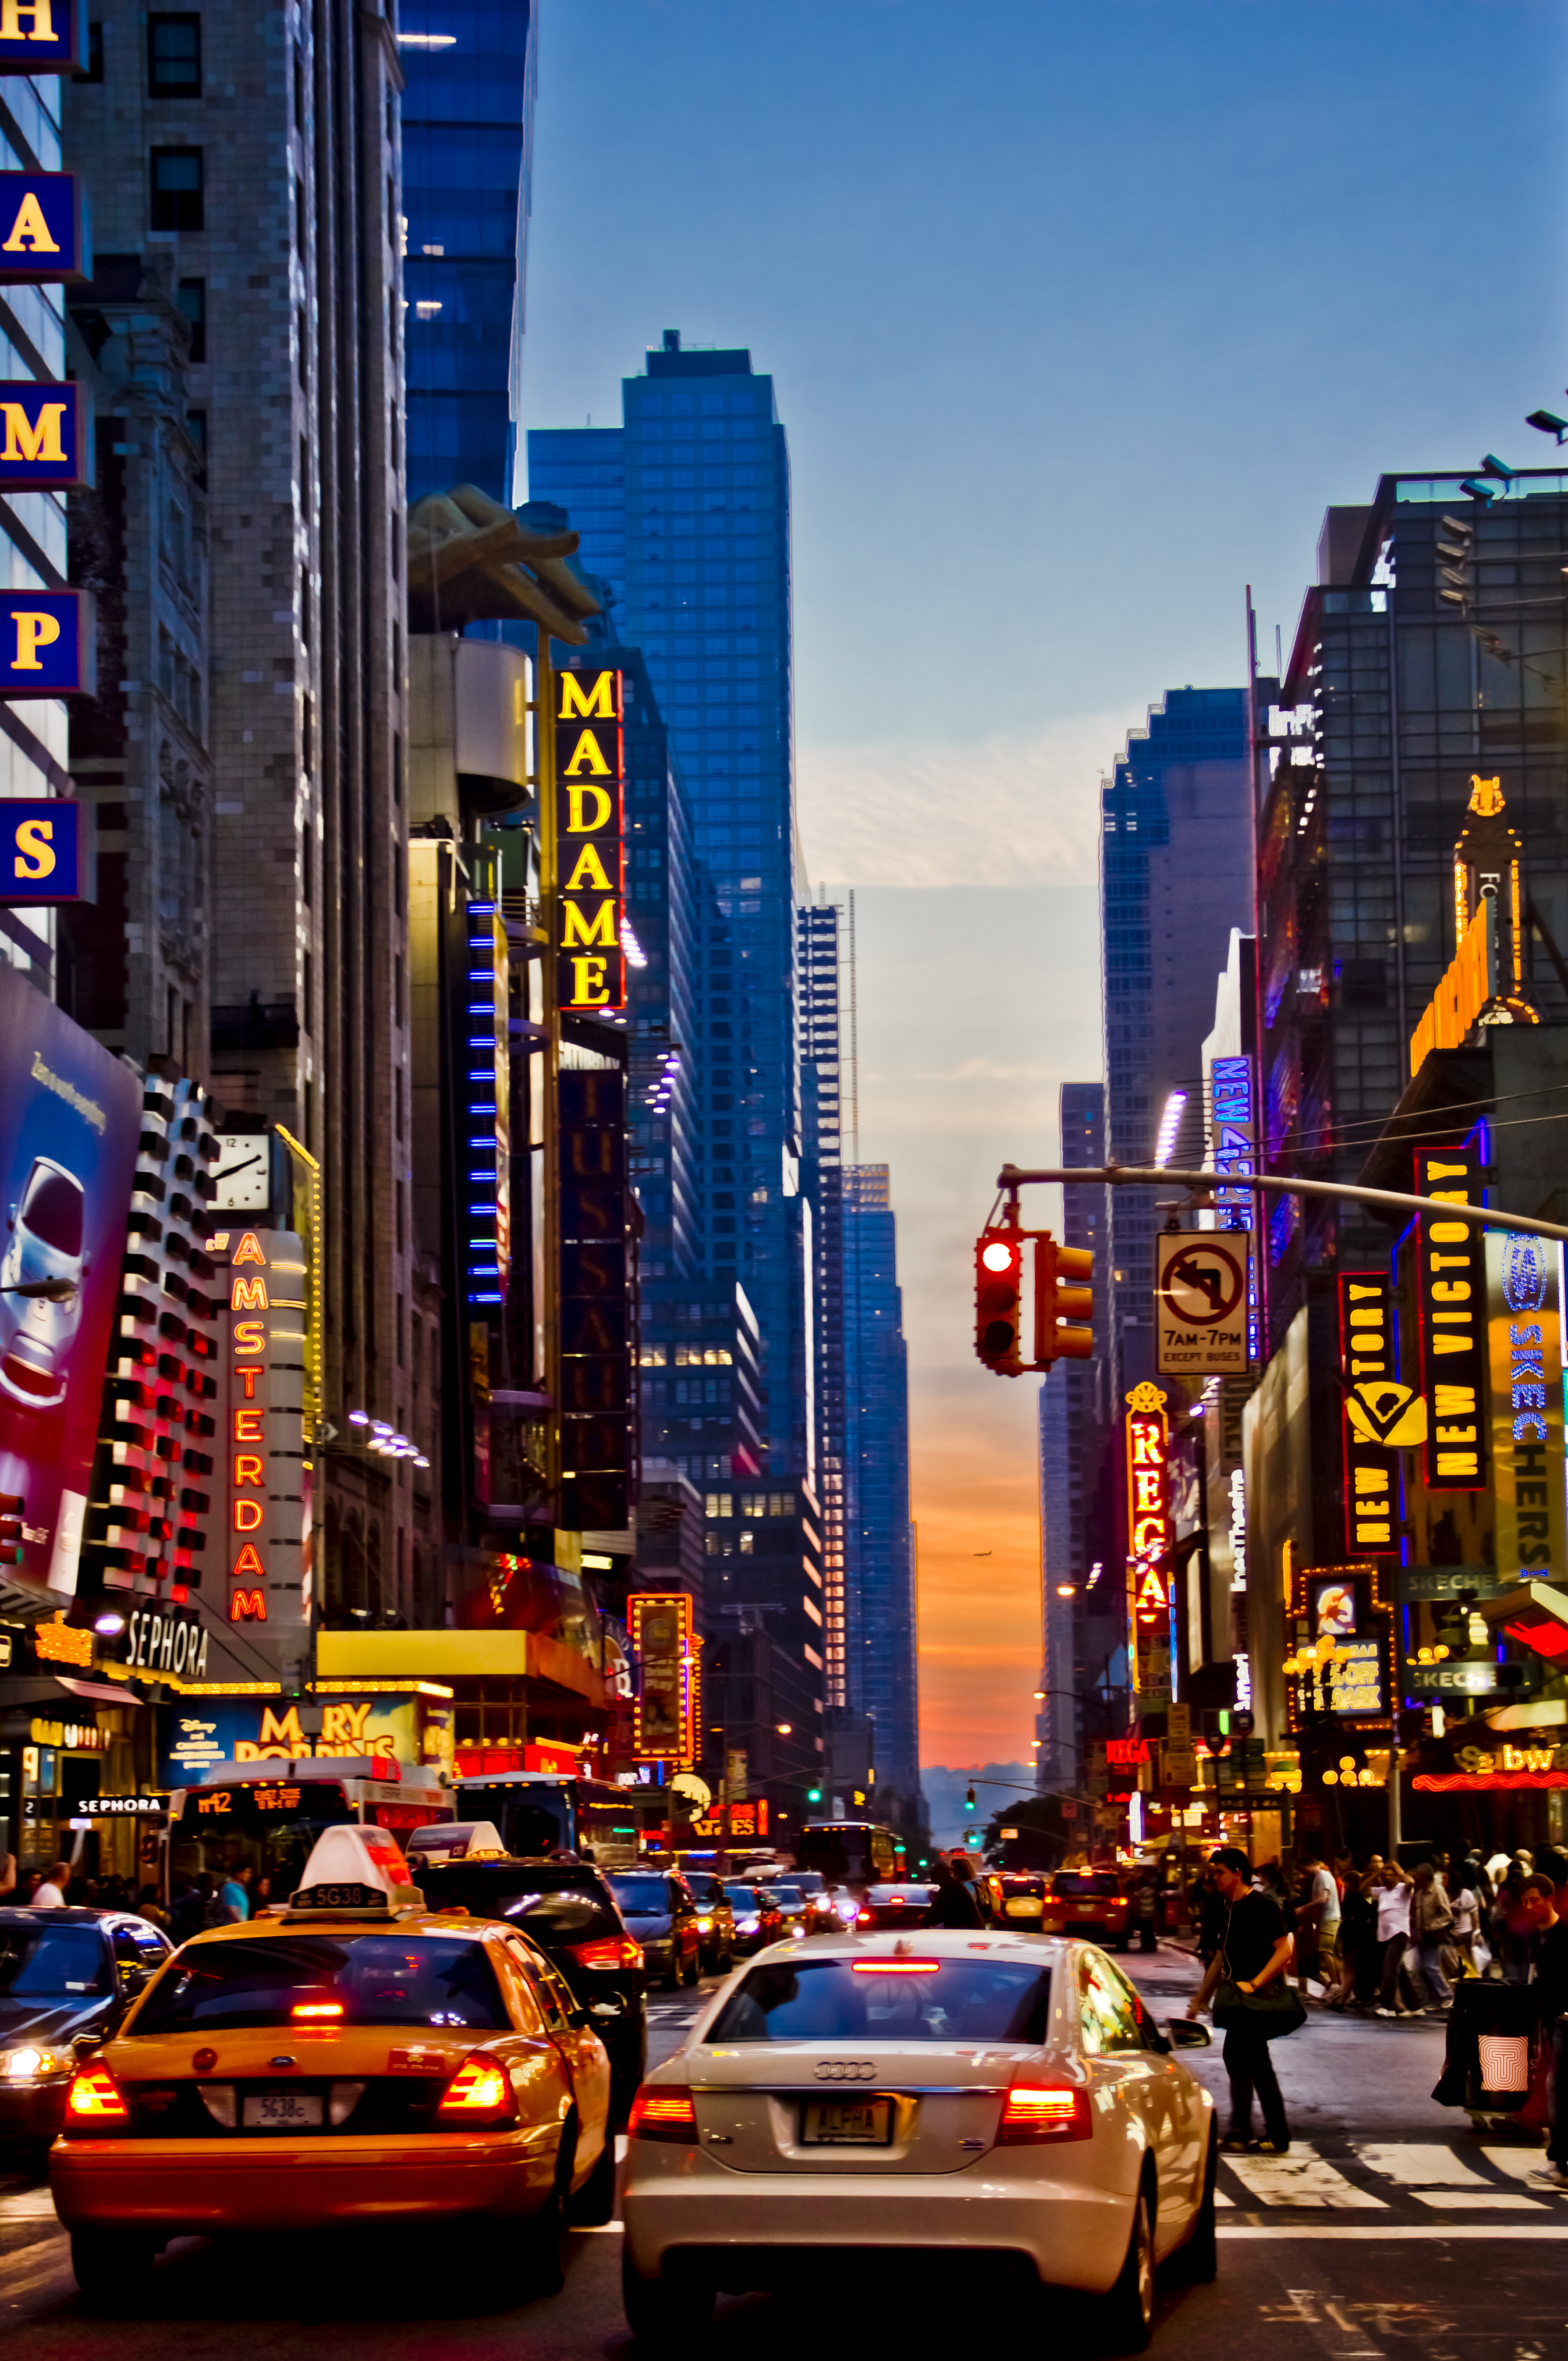 Sunset At Times Square By Mike Iow On Deviantart